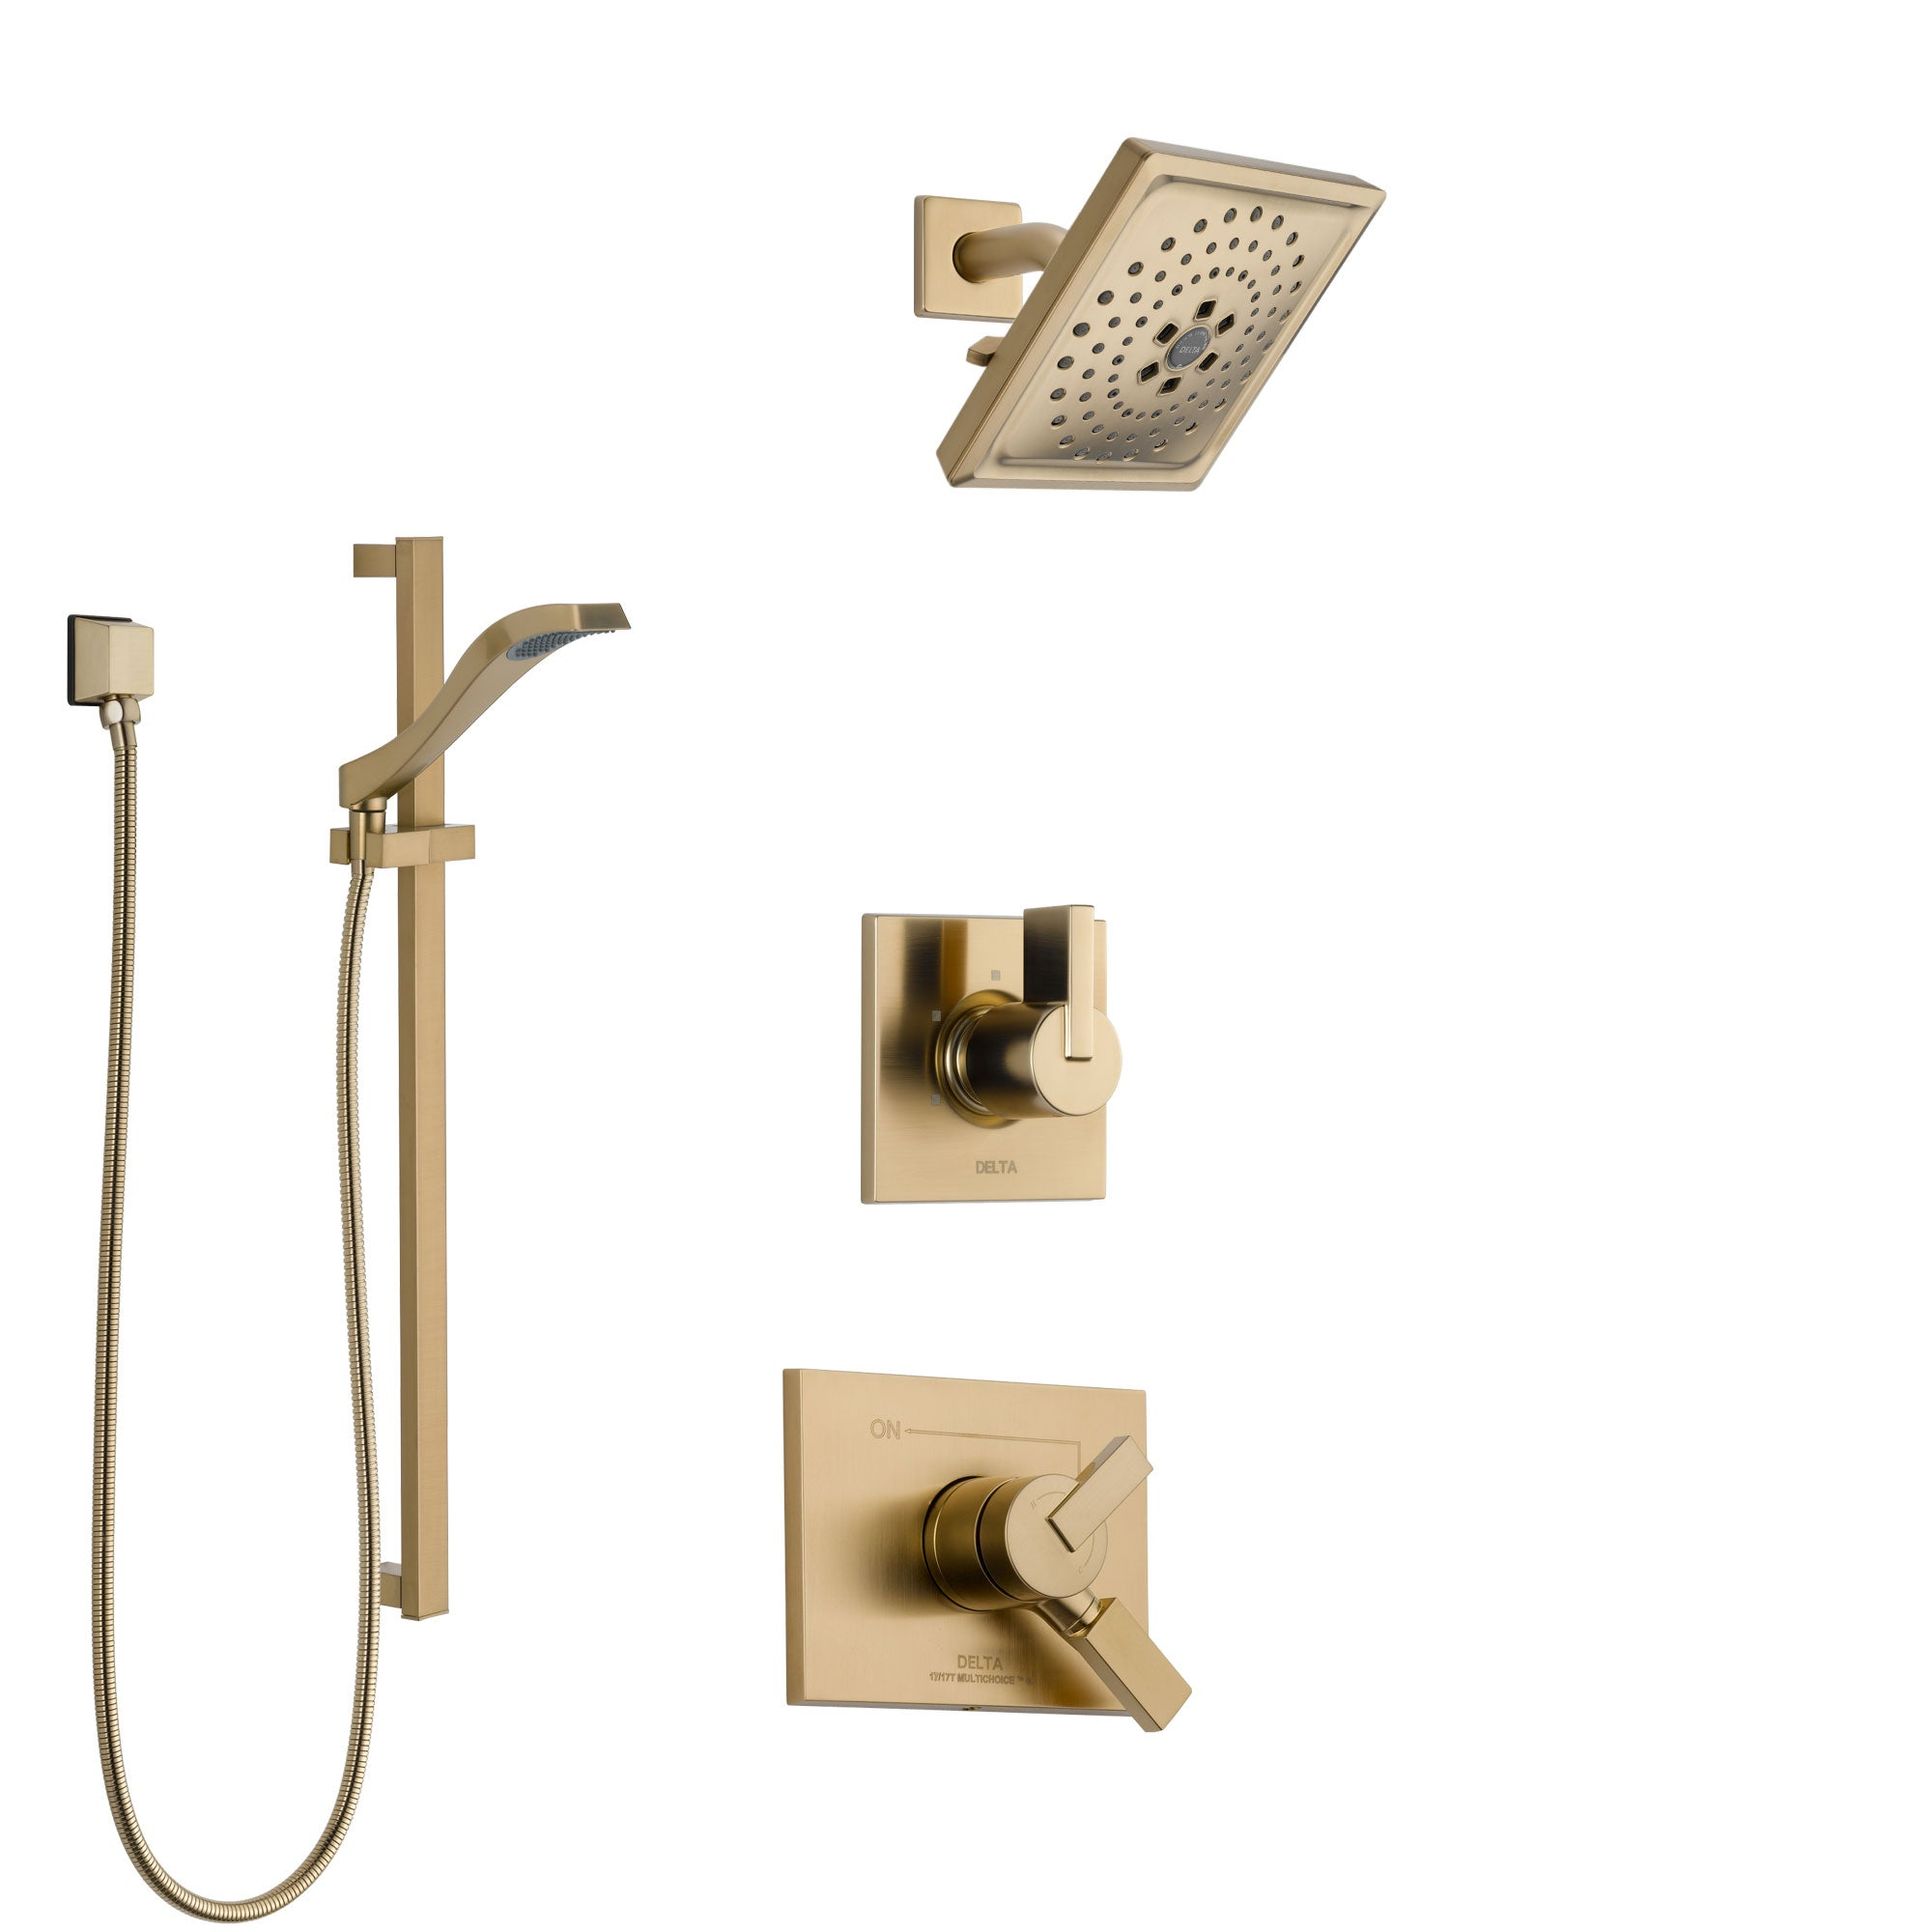 Delta Vero Champagne Bronze Finish Shower System with Dual Control Handle, 3-Setting Diverter, Showerhead, and Hand Shower with Slidebar SS1753CZ4